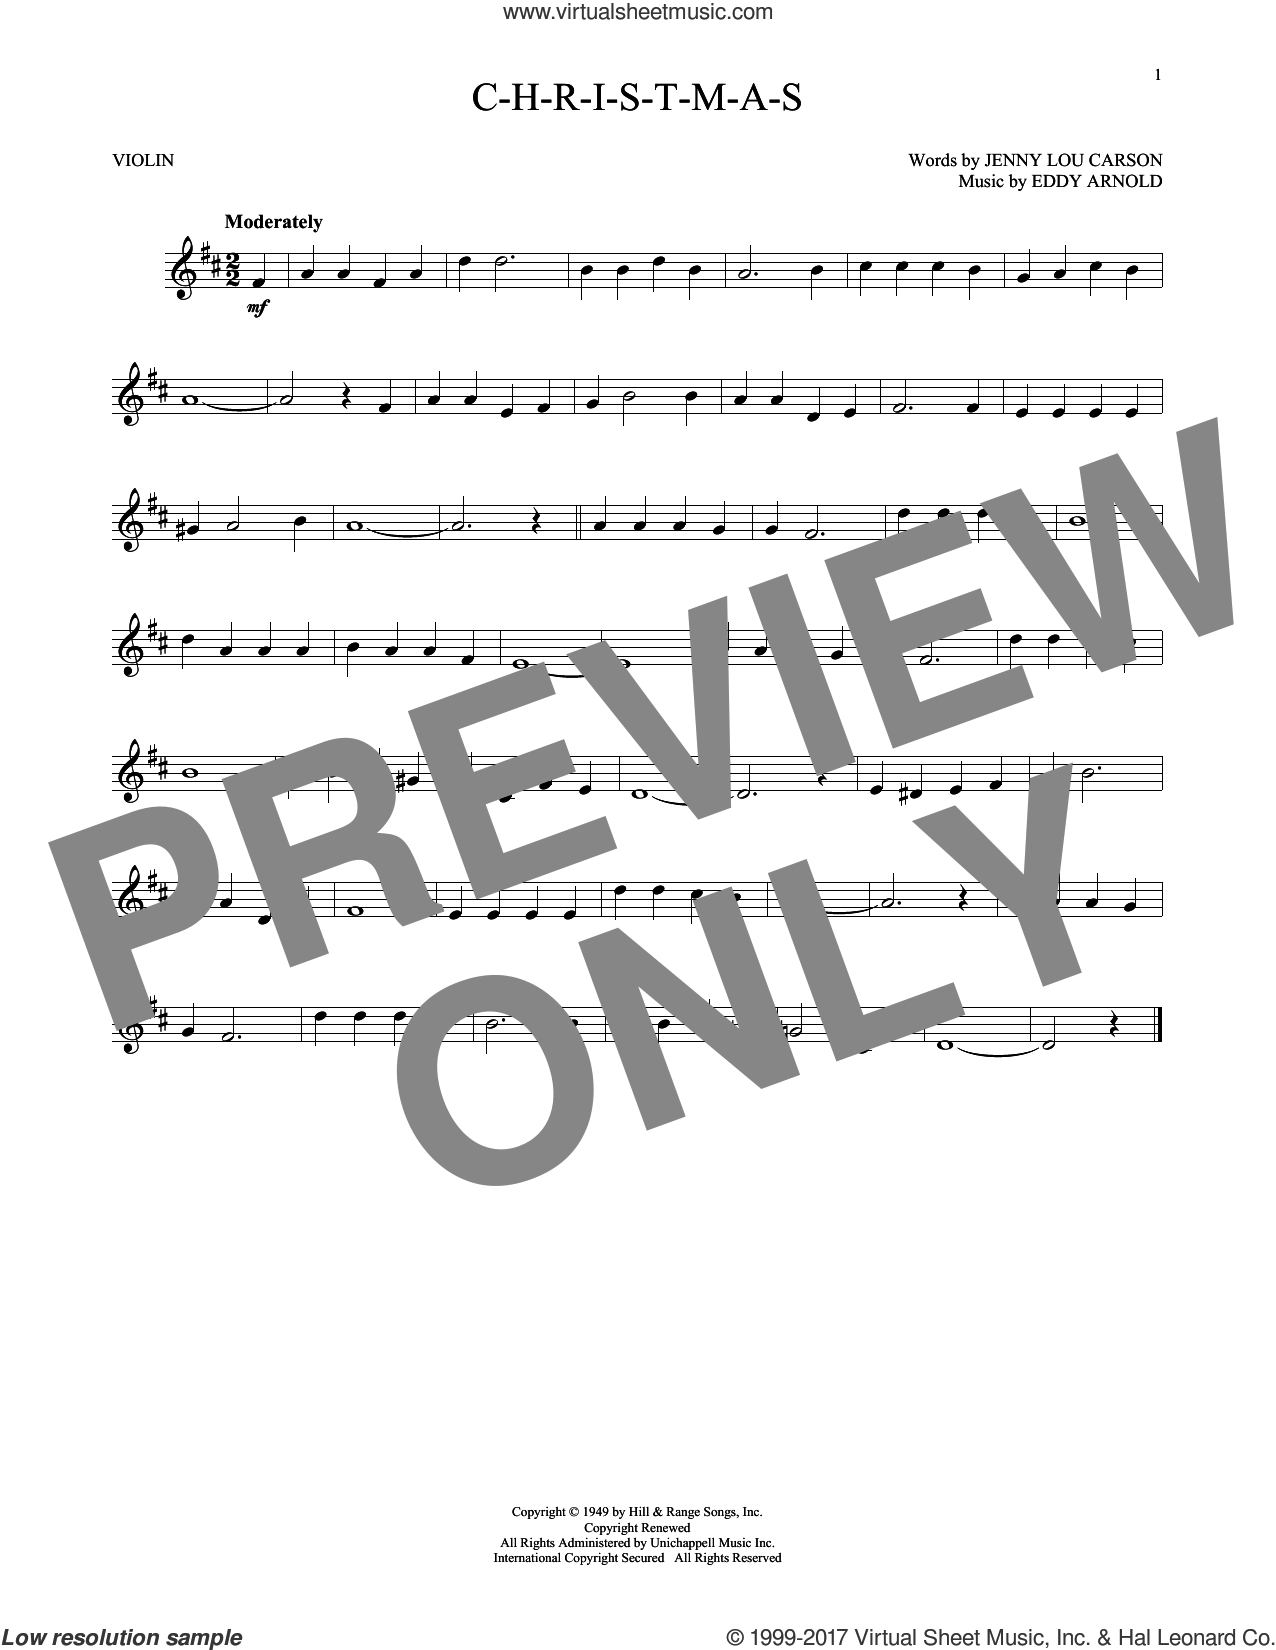 C-H-R-I-S-T-M-A-S sheet music for violin solo by Eddy Arnold and Jenny Lou Carson, intermediate skill level